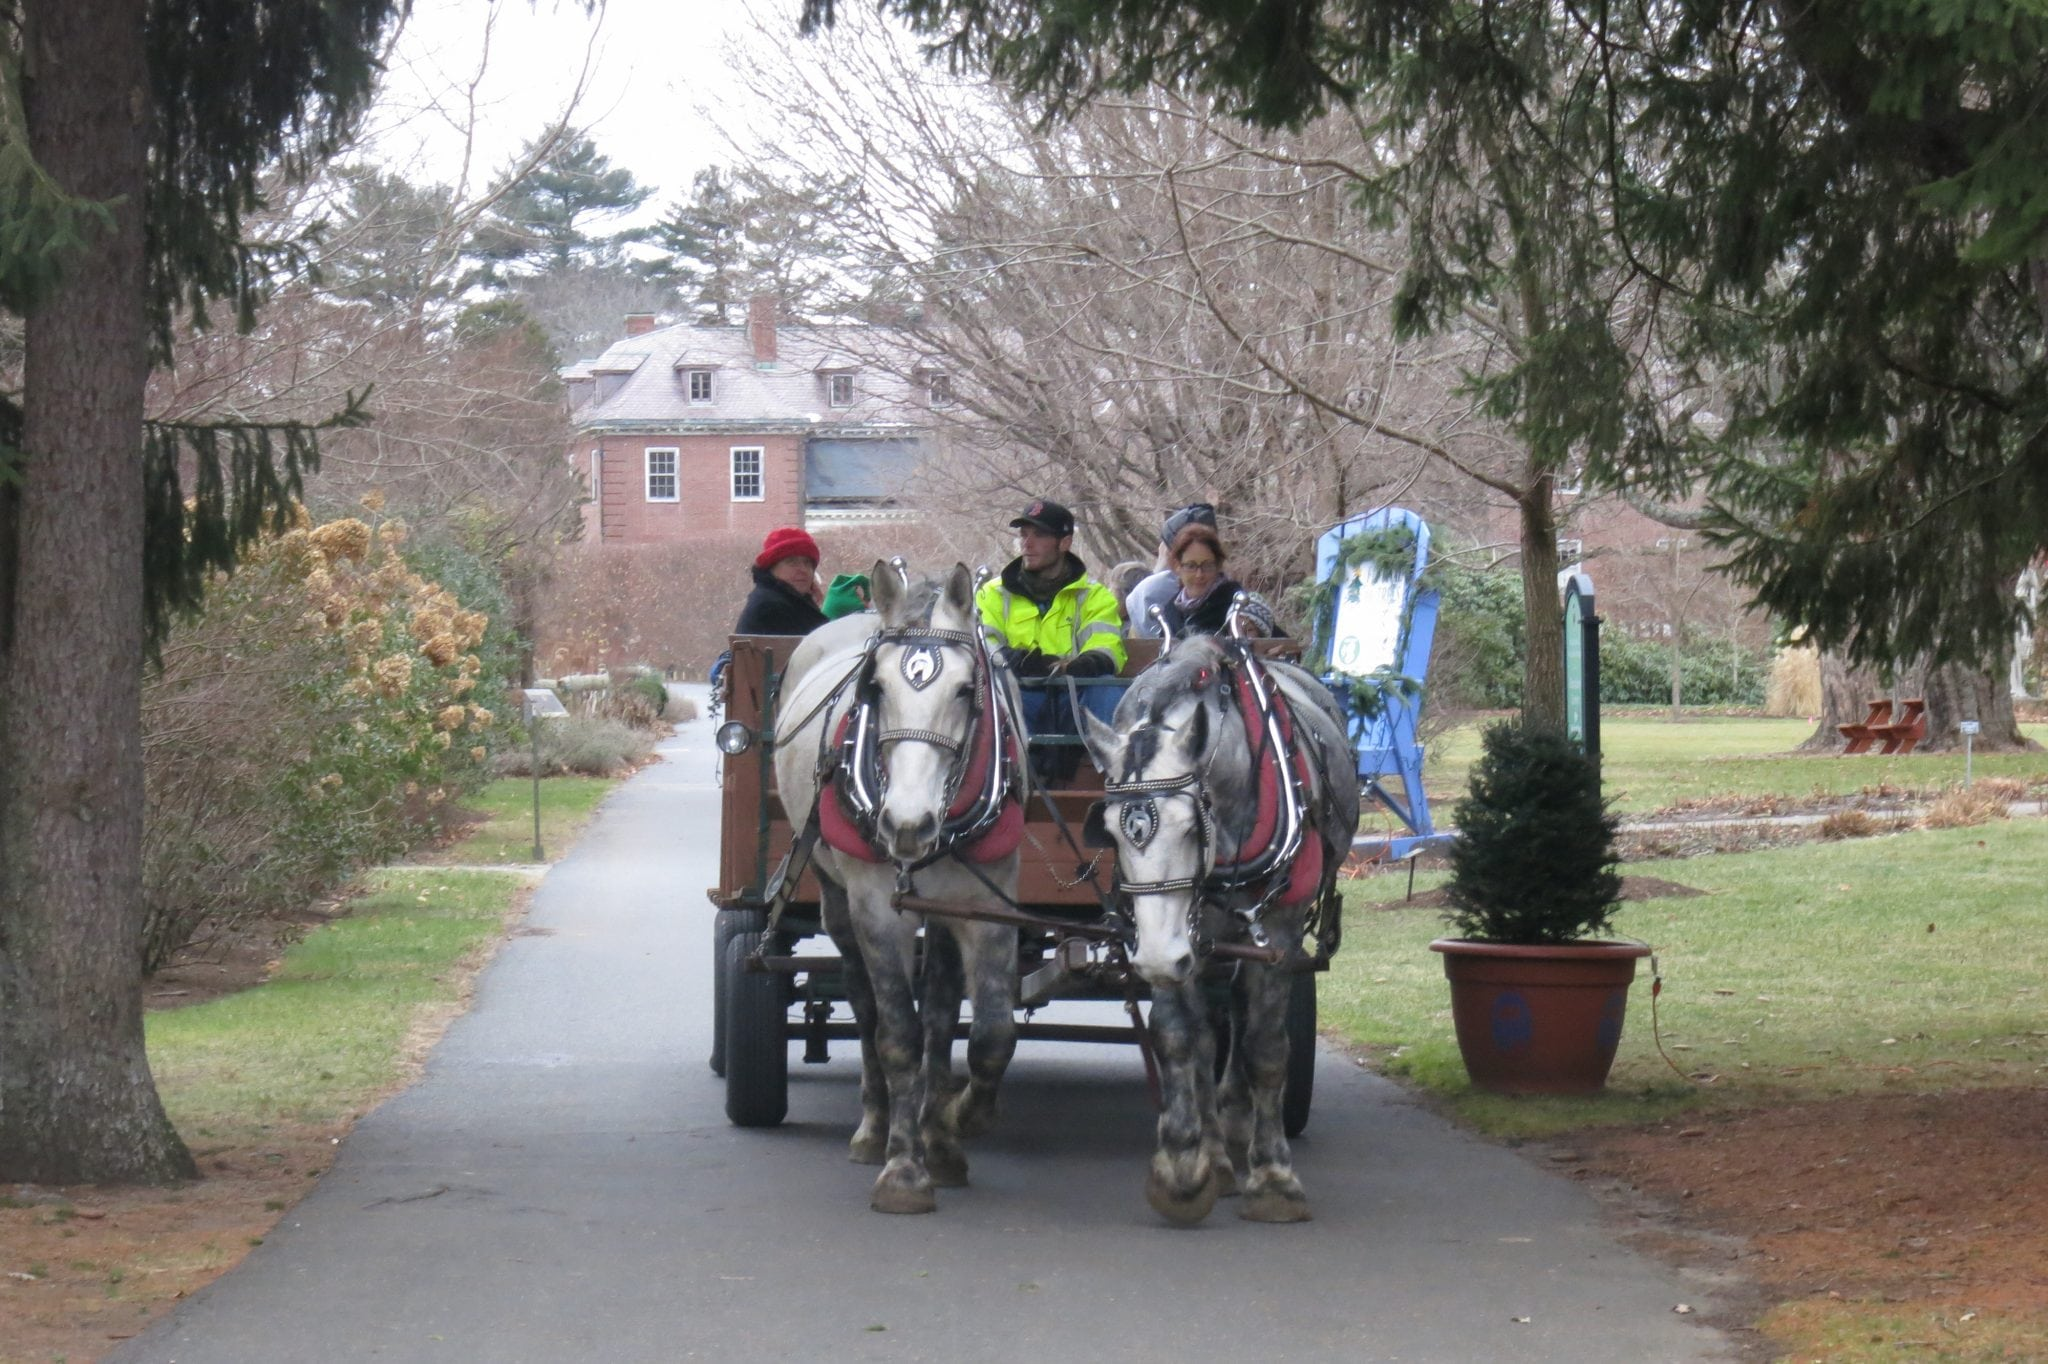 Enjoy a wagon ride duing Mass Hort's Festival of Trees celebration. Photo credit: Mass Hort